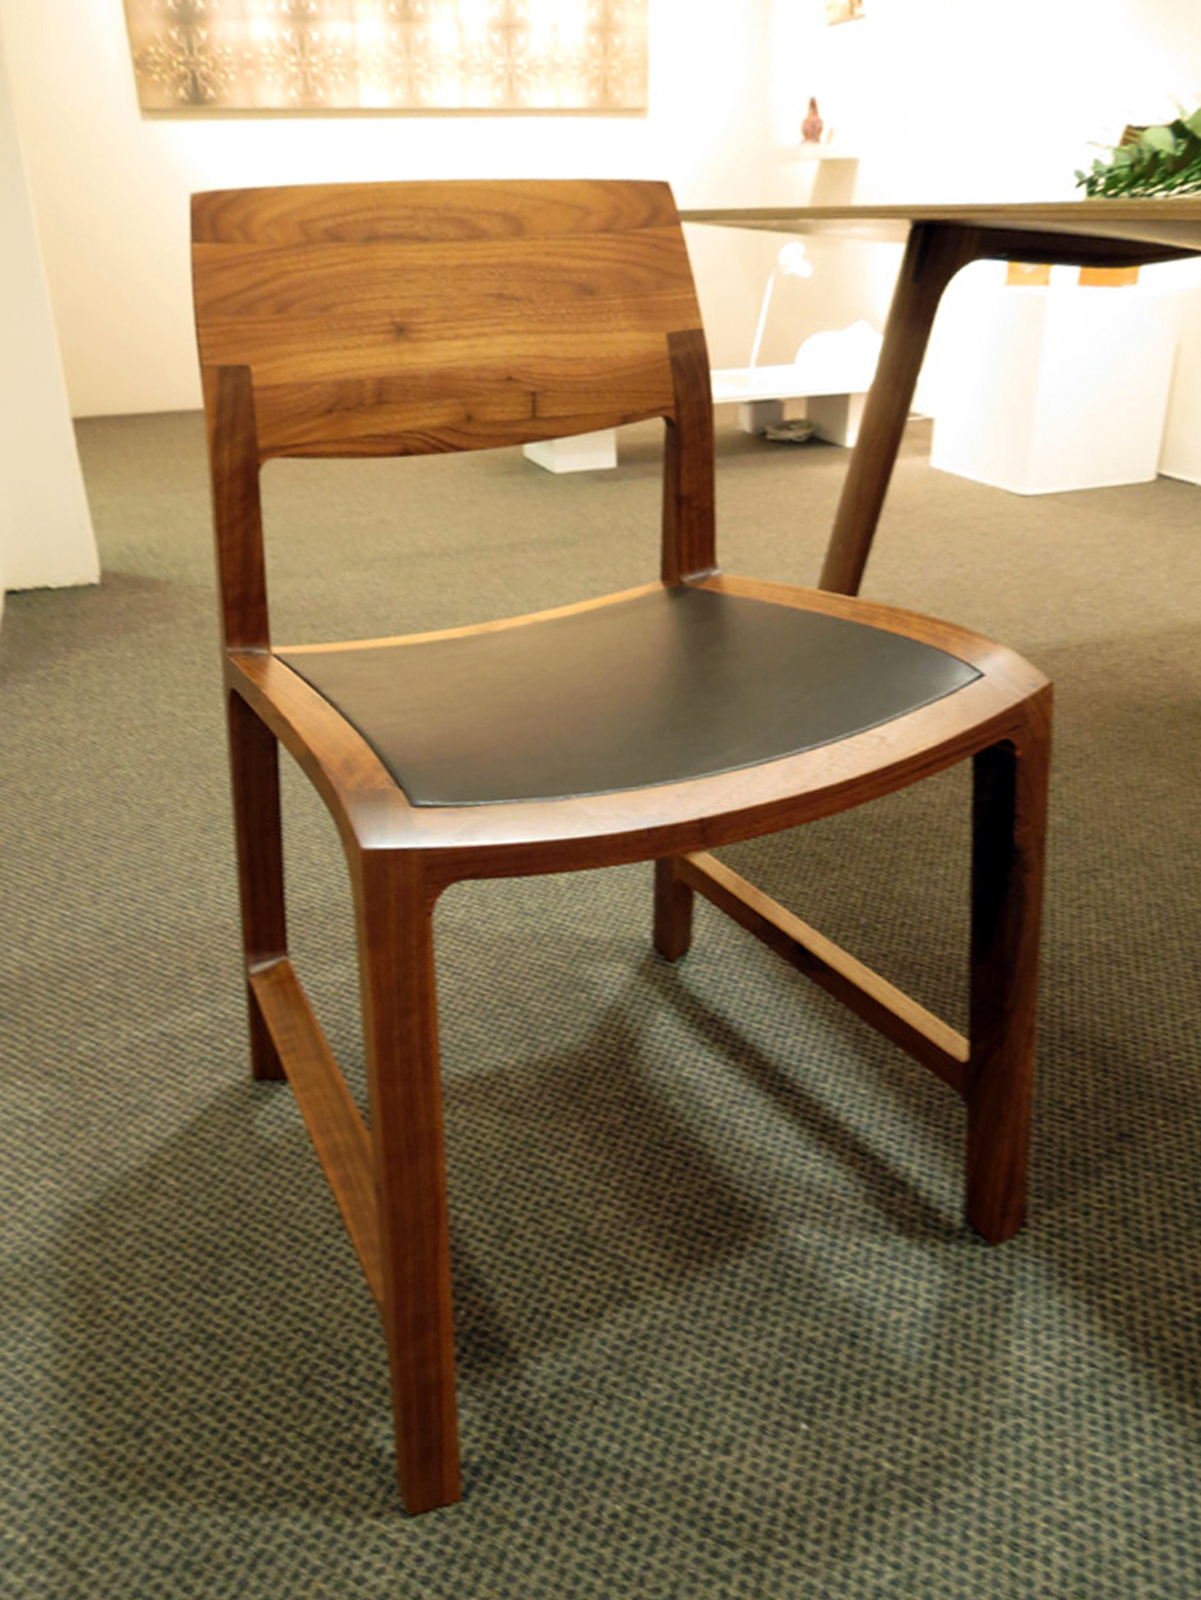 37.  Fletcher Chair , Adam Cruickshank, American Black Walnut, leather, $1300